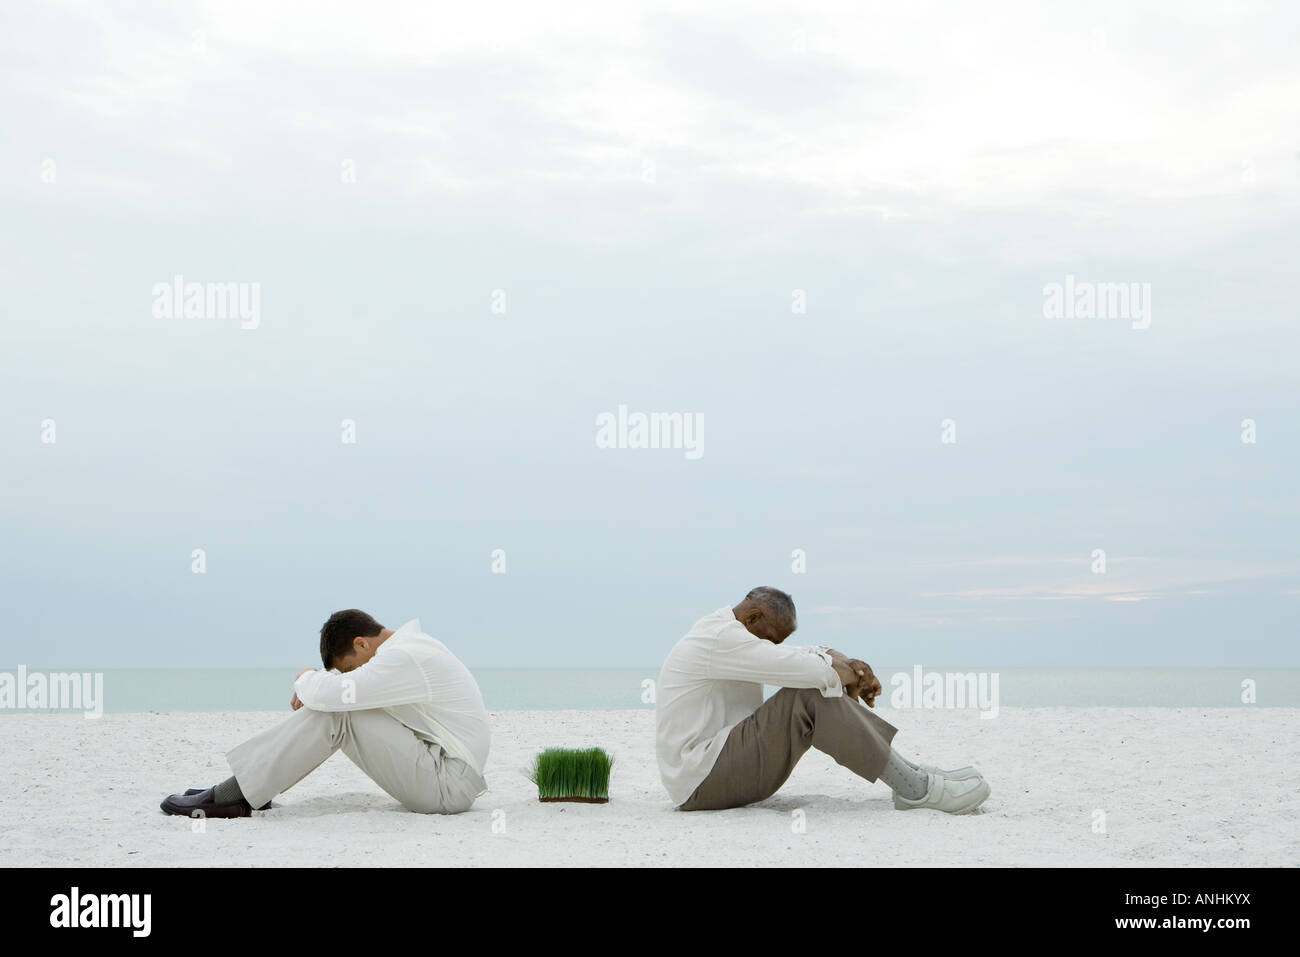 Two men sitting back to back on beach with grass between them, both with heads down - Stock Image